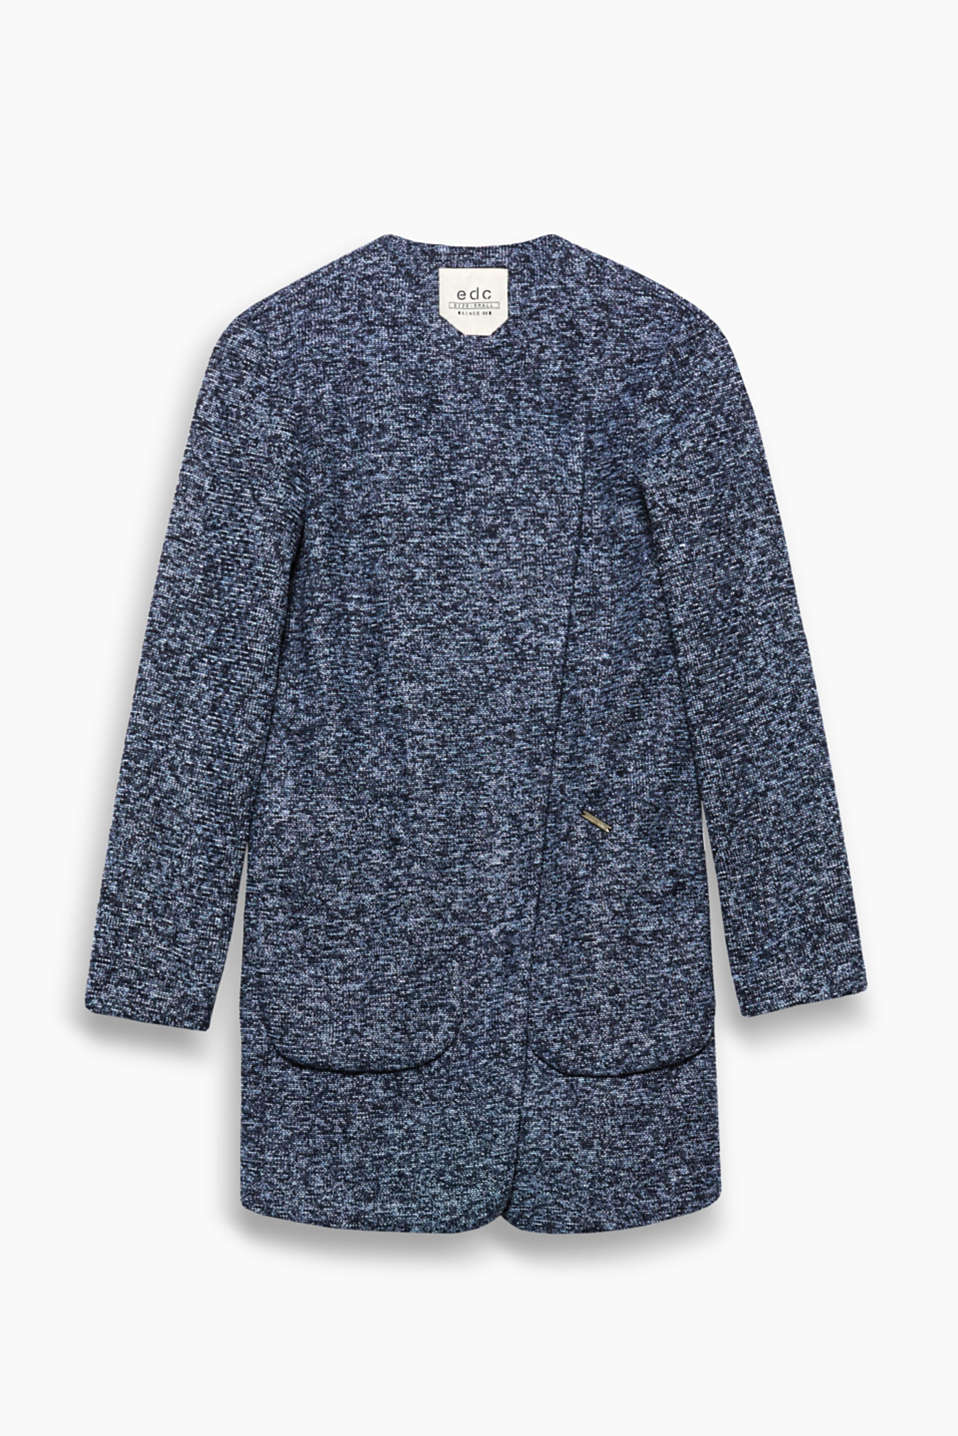 This coat is a fantastic alternative to a cardigan thanks to its open-fronted design in robust melange jersey.